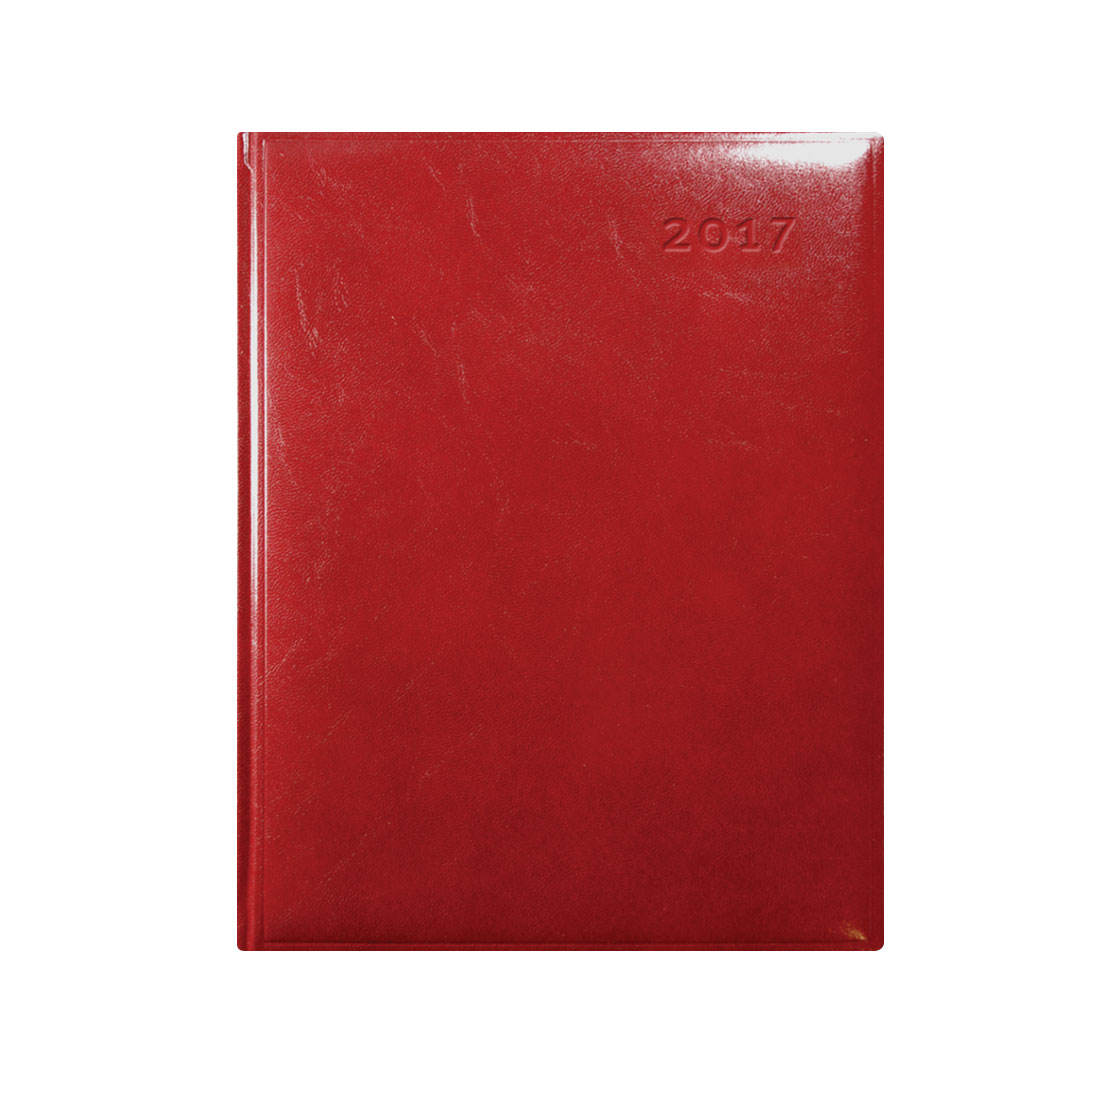 dfe12c72290f8 Castelli Colombia 2019 Quarto weekly diary - Executive Gifts UK